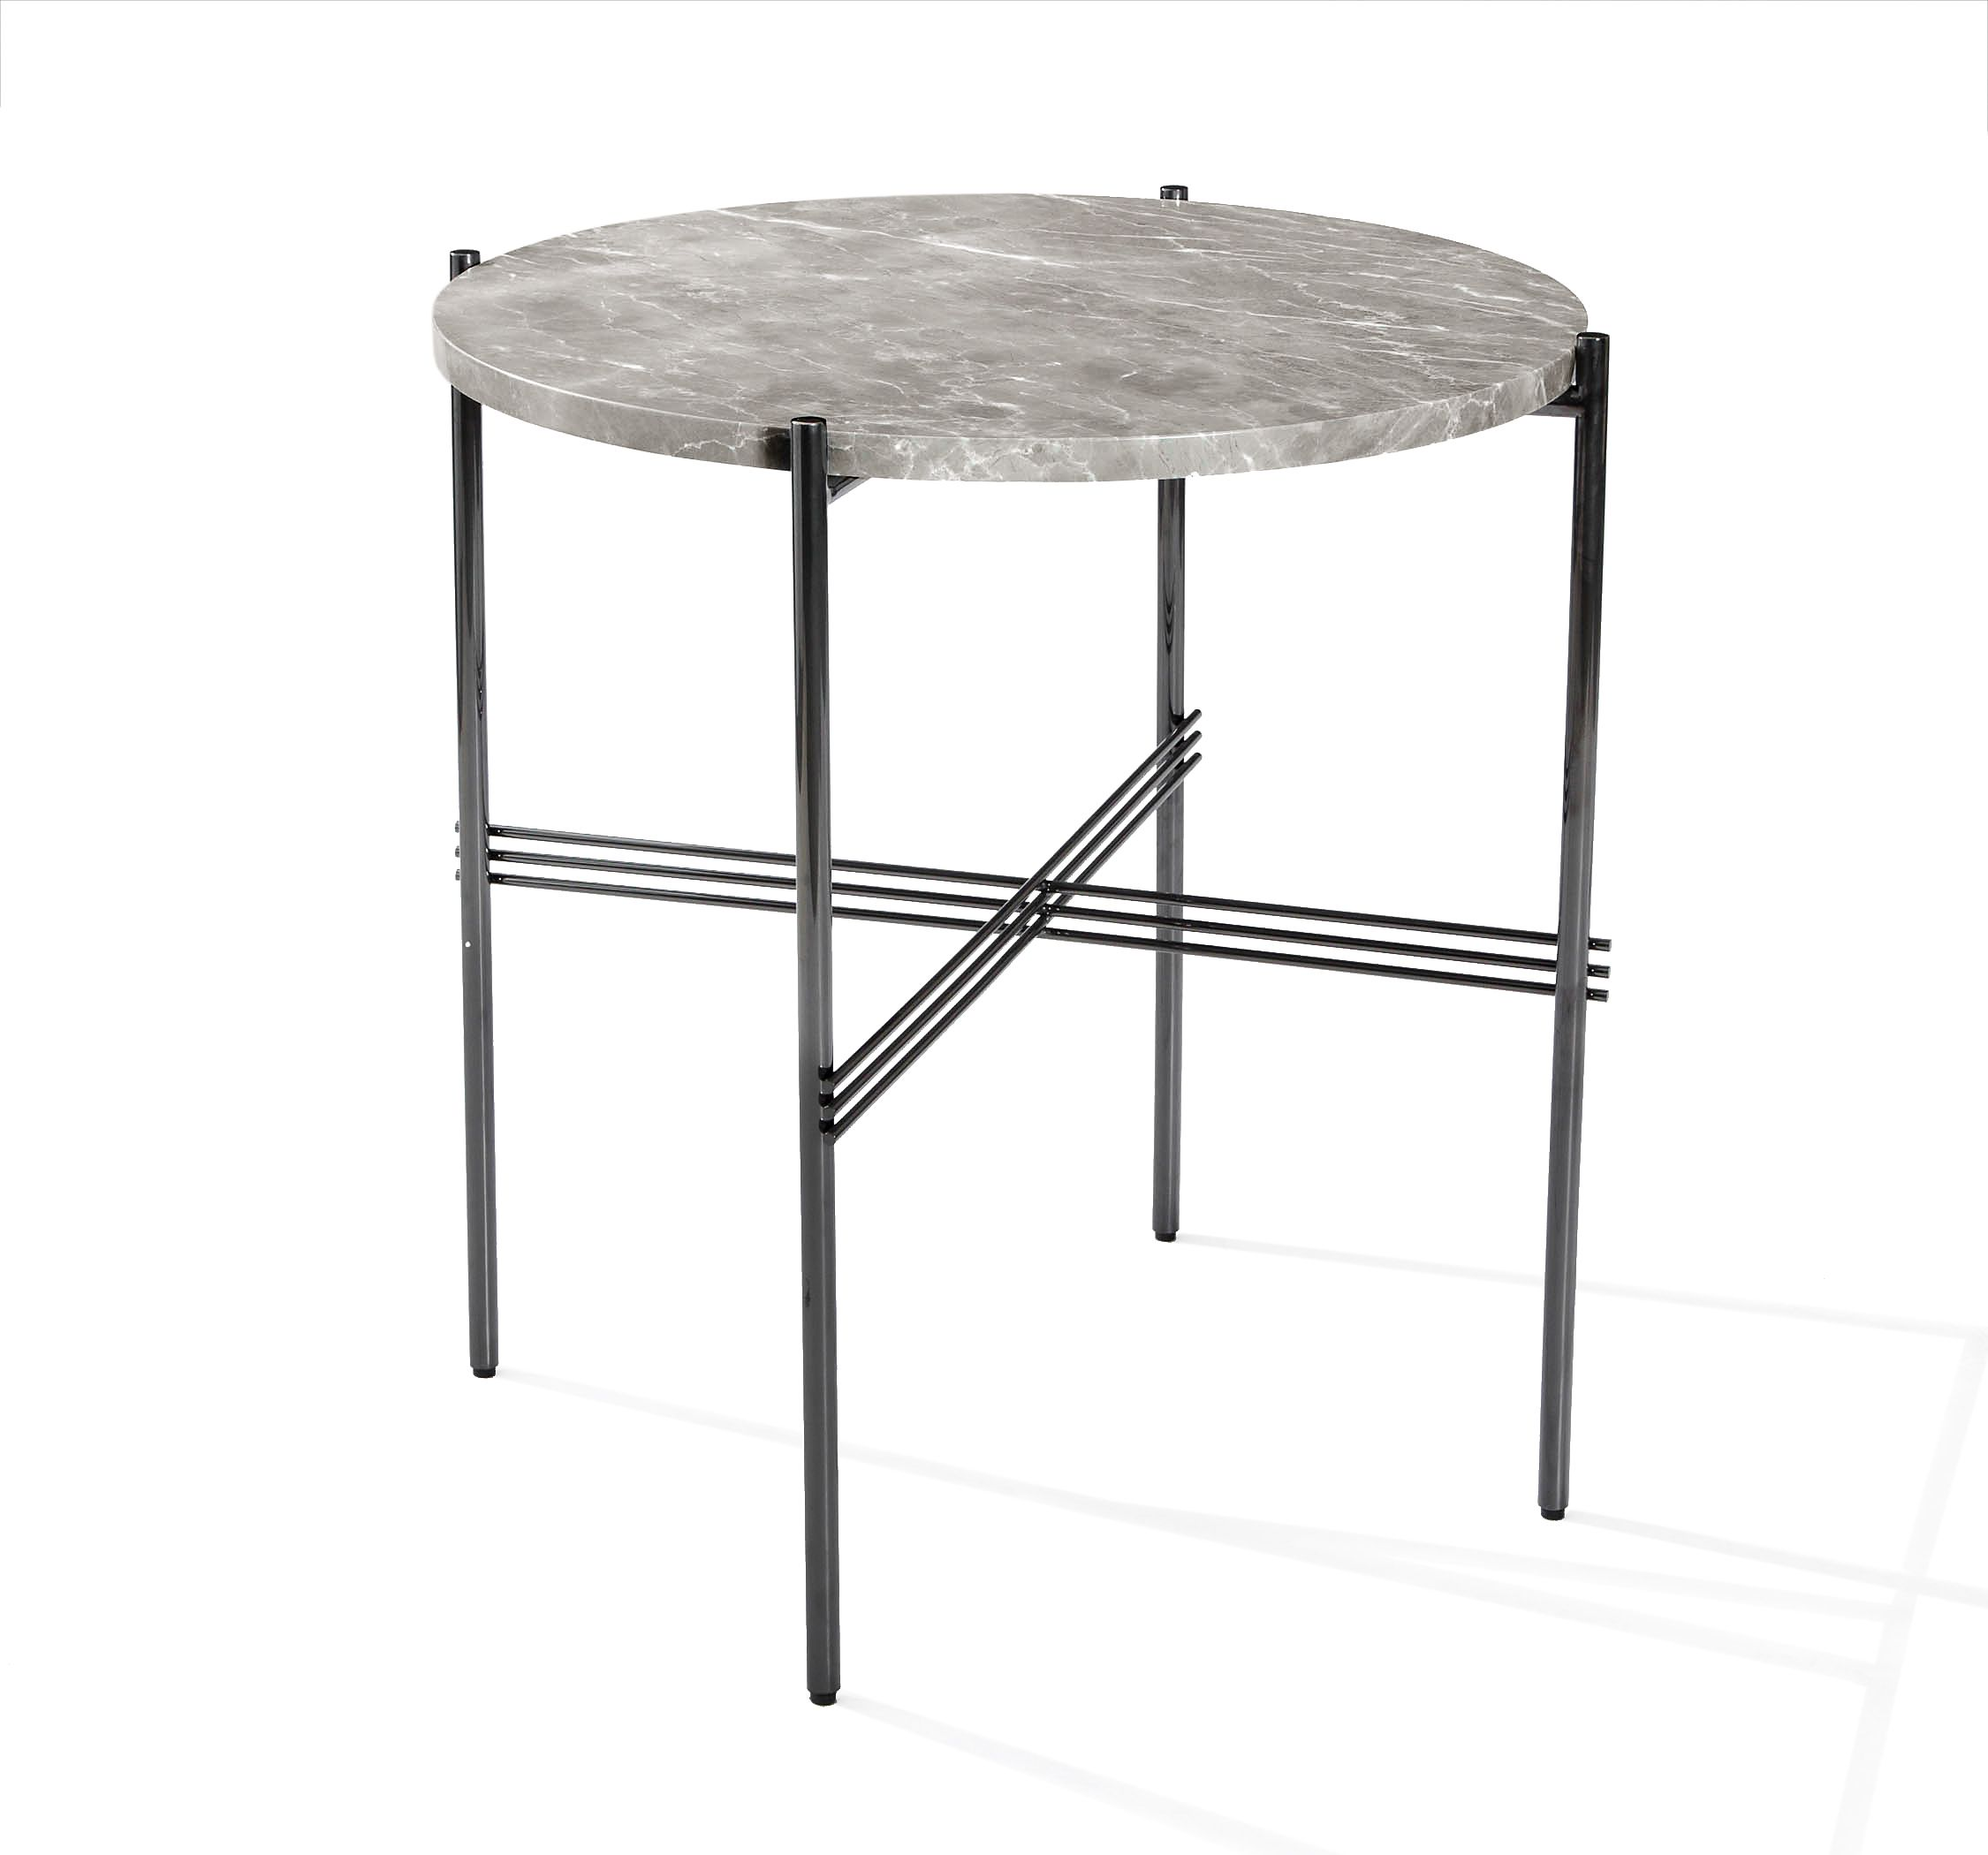 Selita Center Bistro Table Italian Gray Design By Interlude Home  Dimensions: X Dia Material: Stainless Steel/ Marble Finish: Gunmetal/  Italian Gray A Modern ...